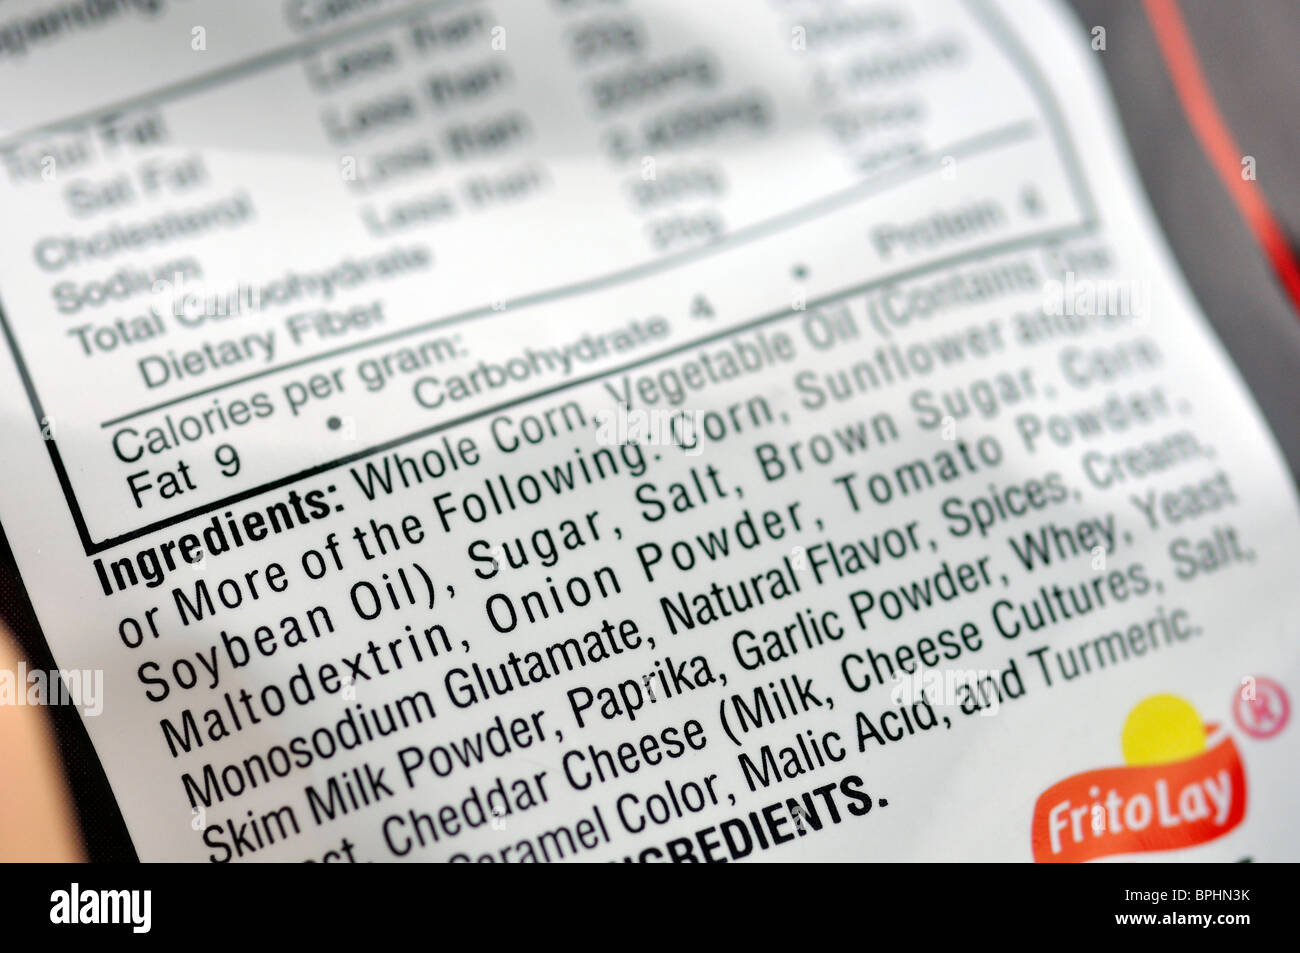 Frito Lay Label Stock Photos & Frito Lay Label Stock Images